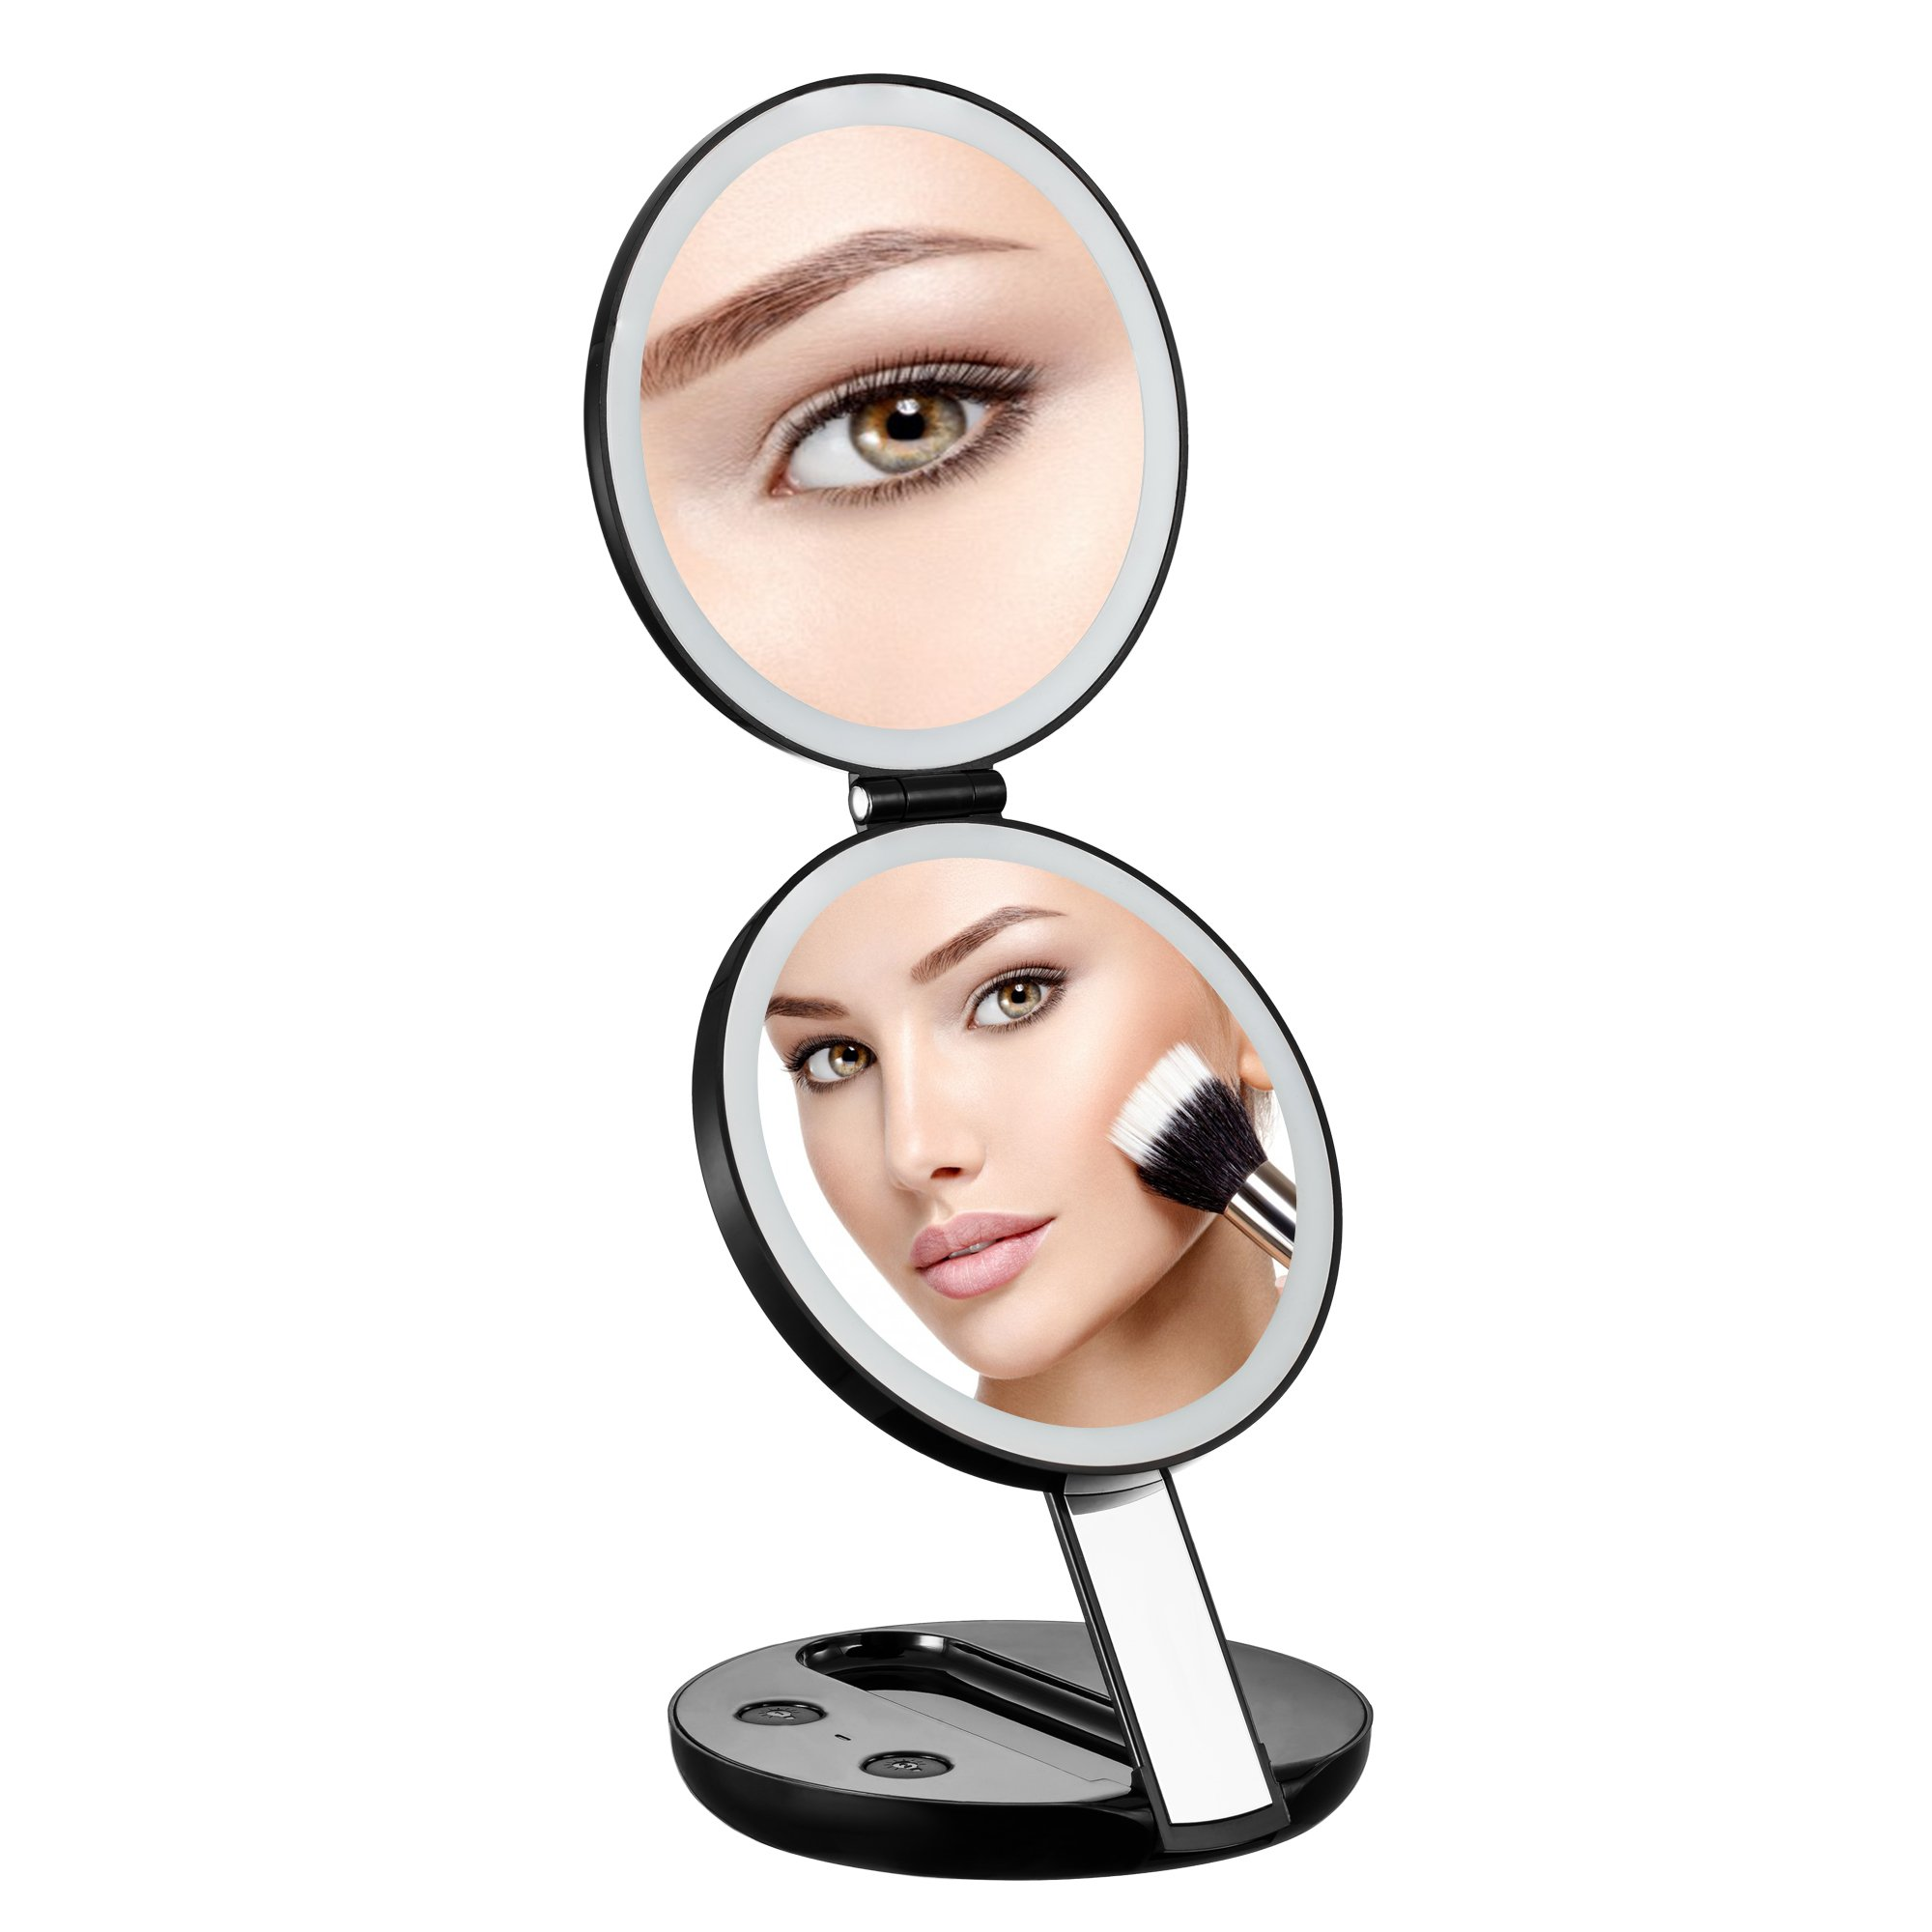 B&F Travel Makeup Mirror,Round 7X and 1X Magnifying Lighted Vanity Mirror,Dual Power Supply, Folding Handheld Compact Mirror